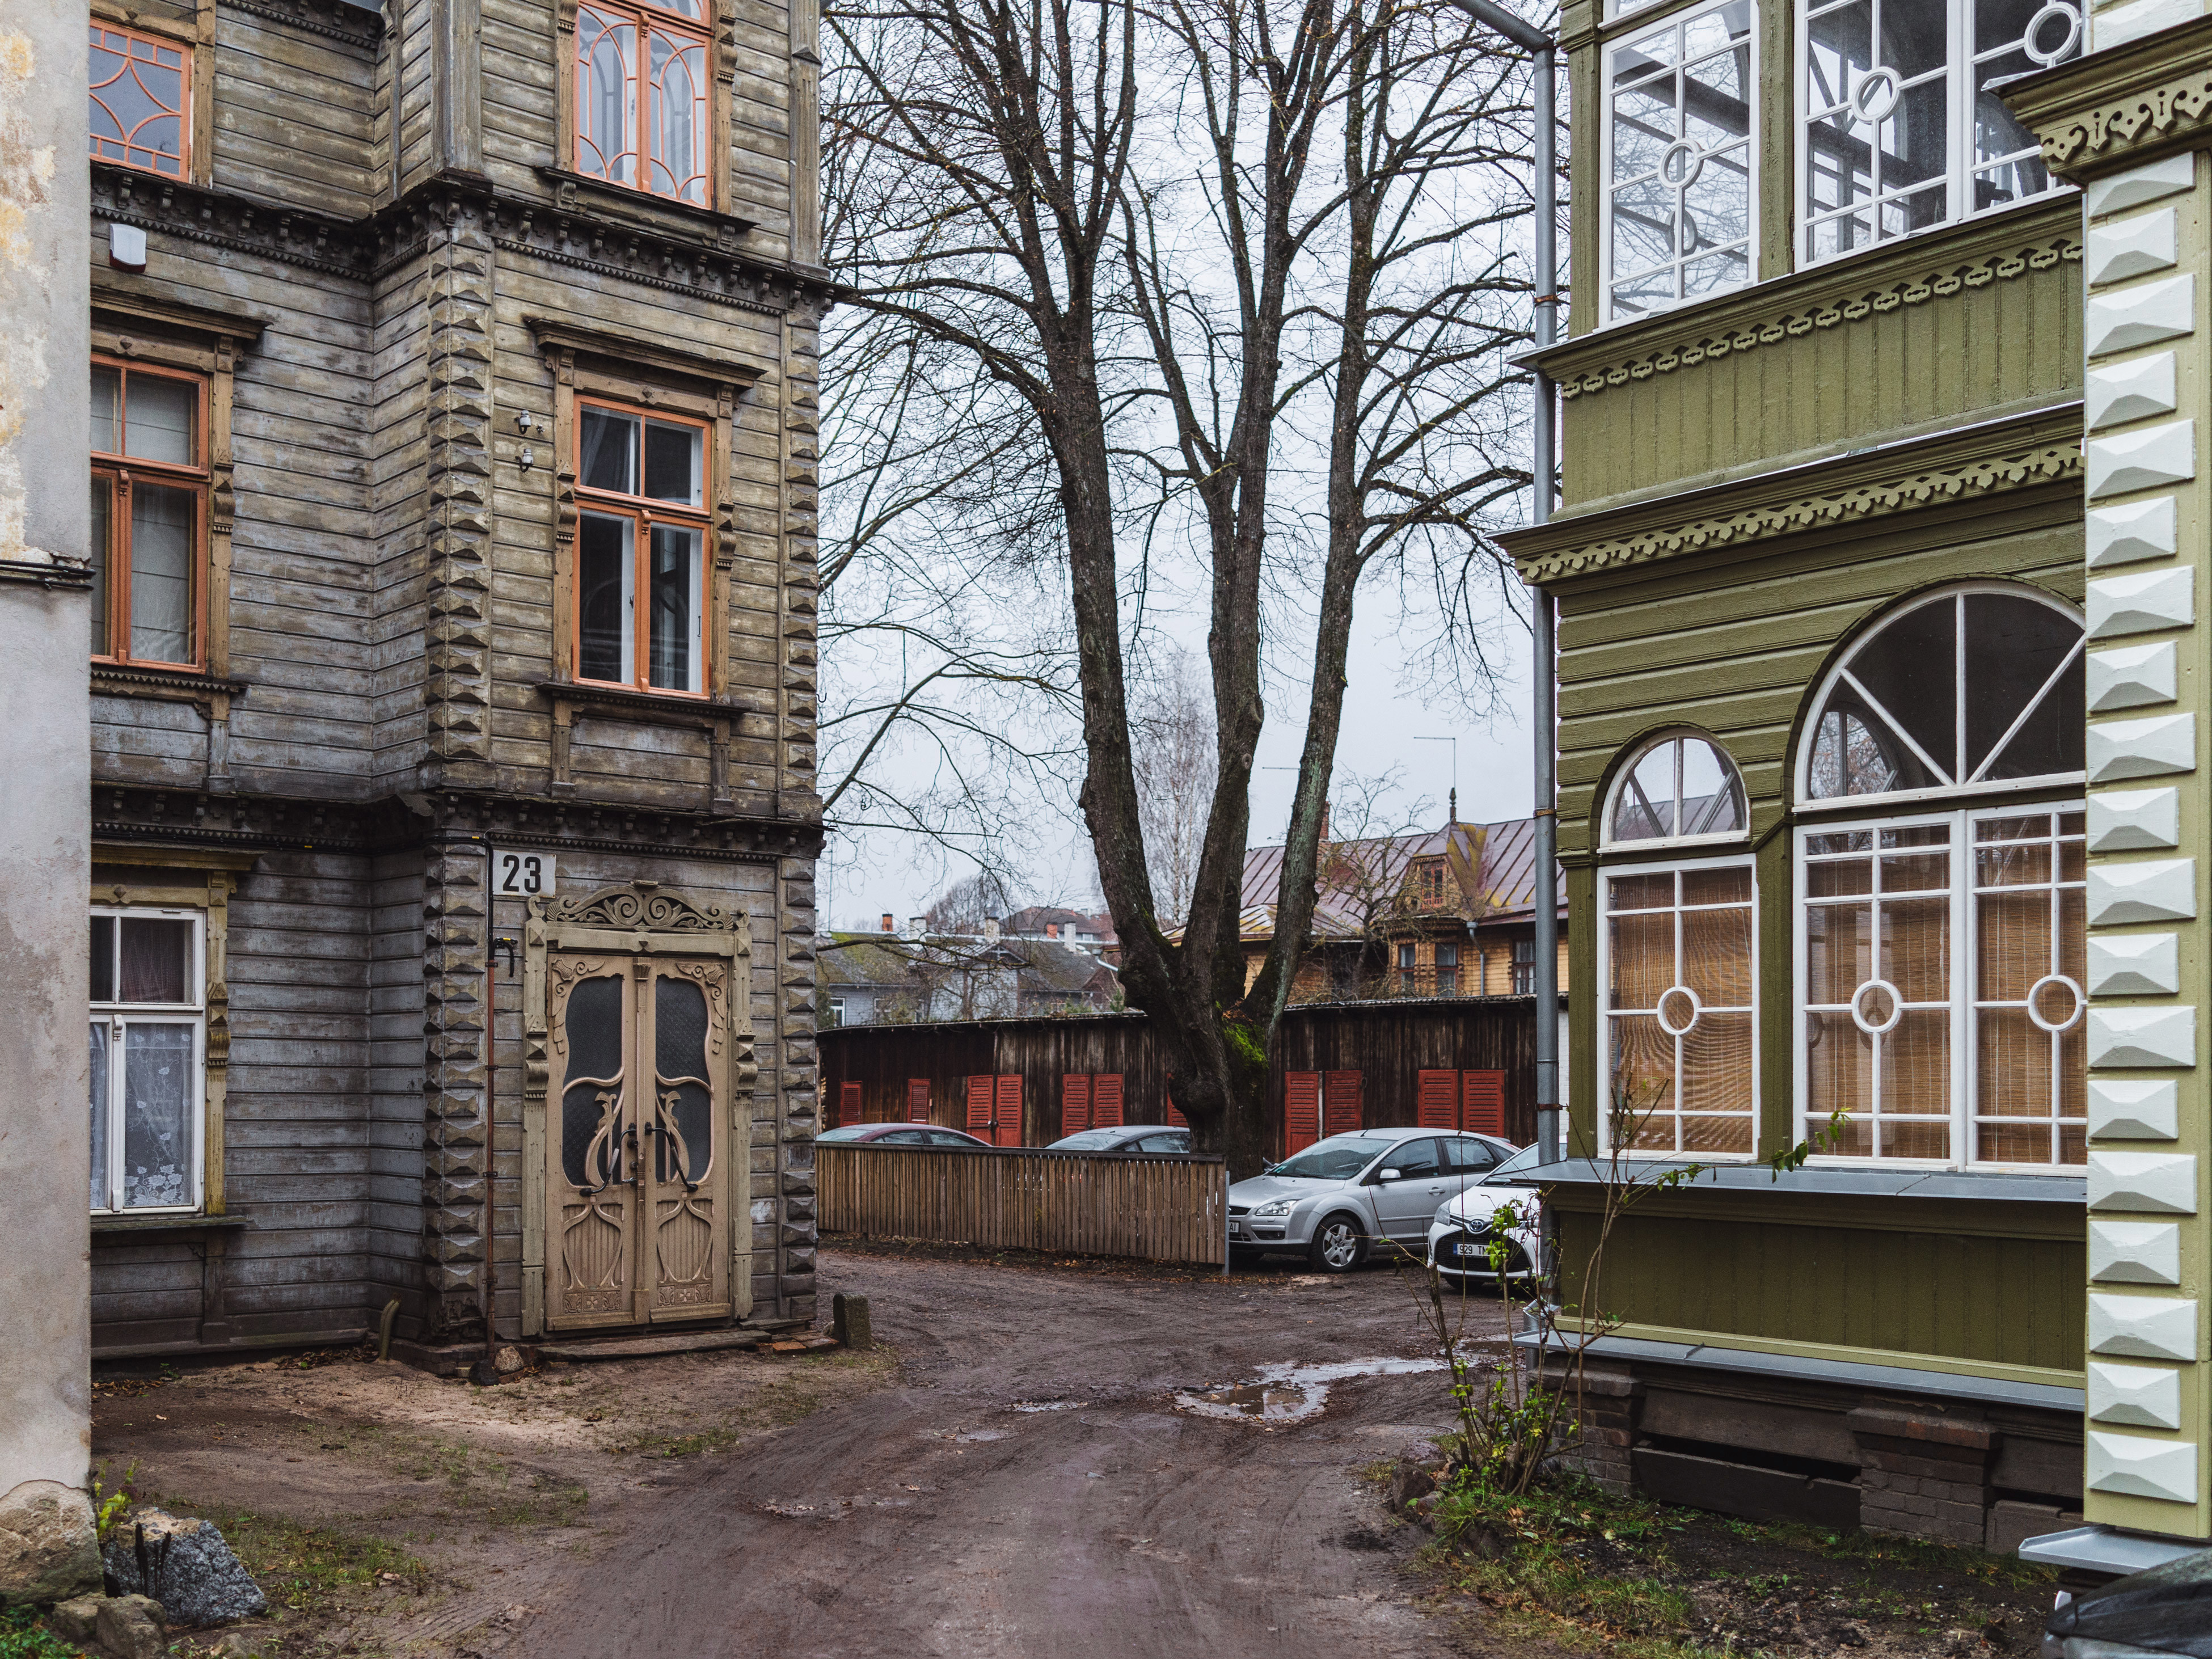 Vaksali, Tartu. When the leaves are gone and the snow hasn't arrived yet, the cityscapes go through an intermission that is hard to swallow for many of us. But, somehow, some parts of the town actually become more picturesque during this time. The old wooden districts, where houses aren't disconnected from the street by large gardens, turn on their most painting-like faces.